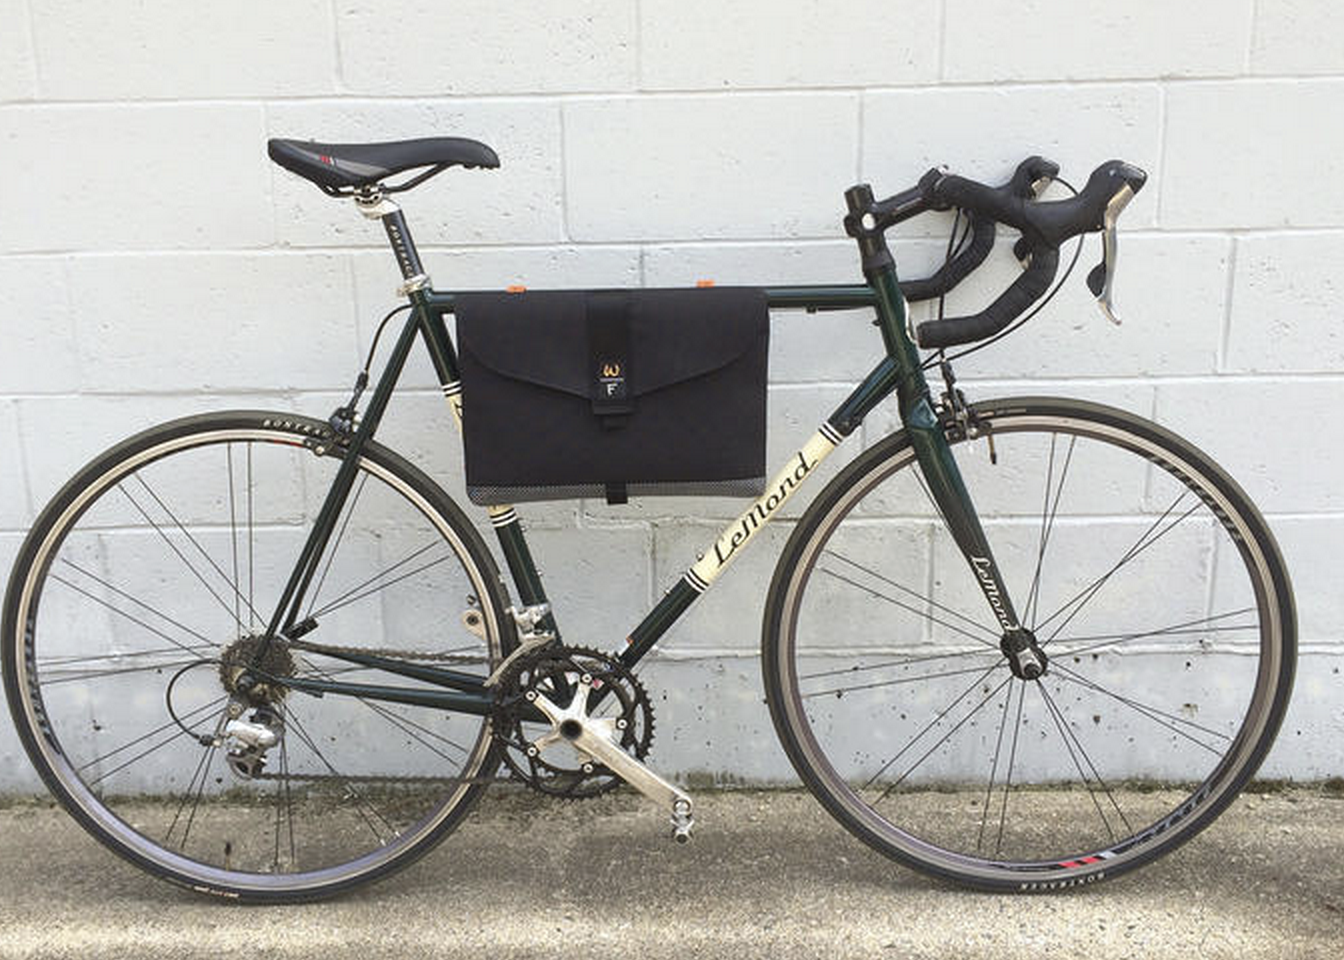 Custom Frame Bag for Laptops http://www.bikeforums.net/commuting ...